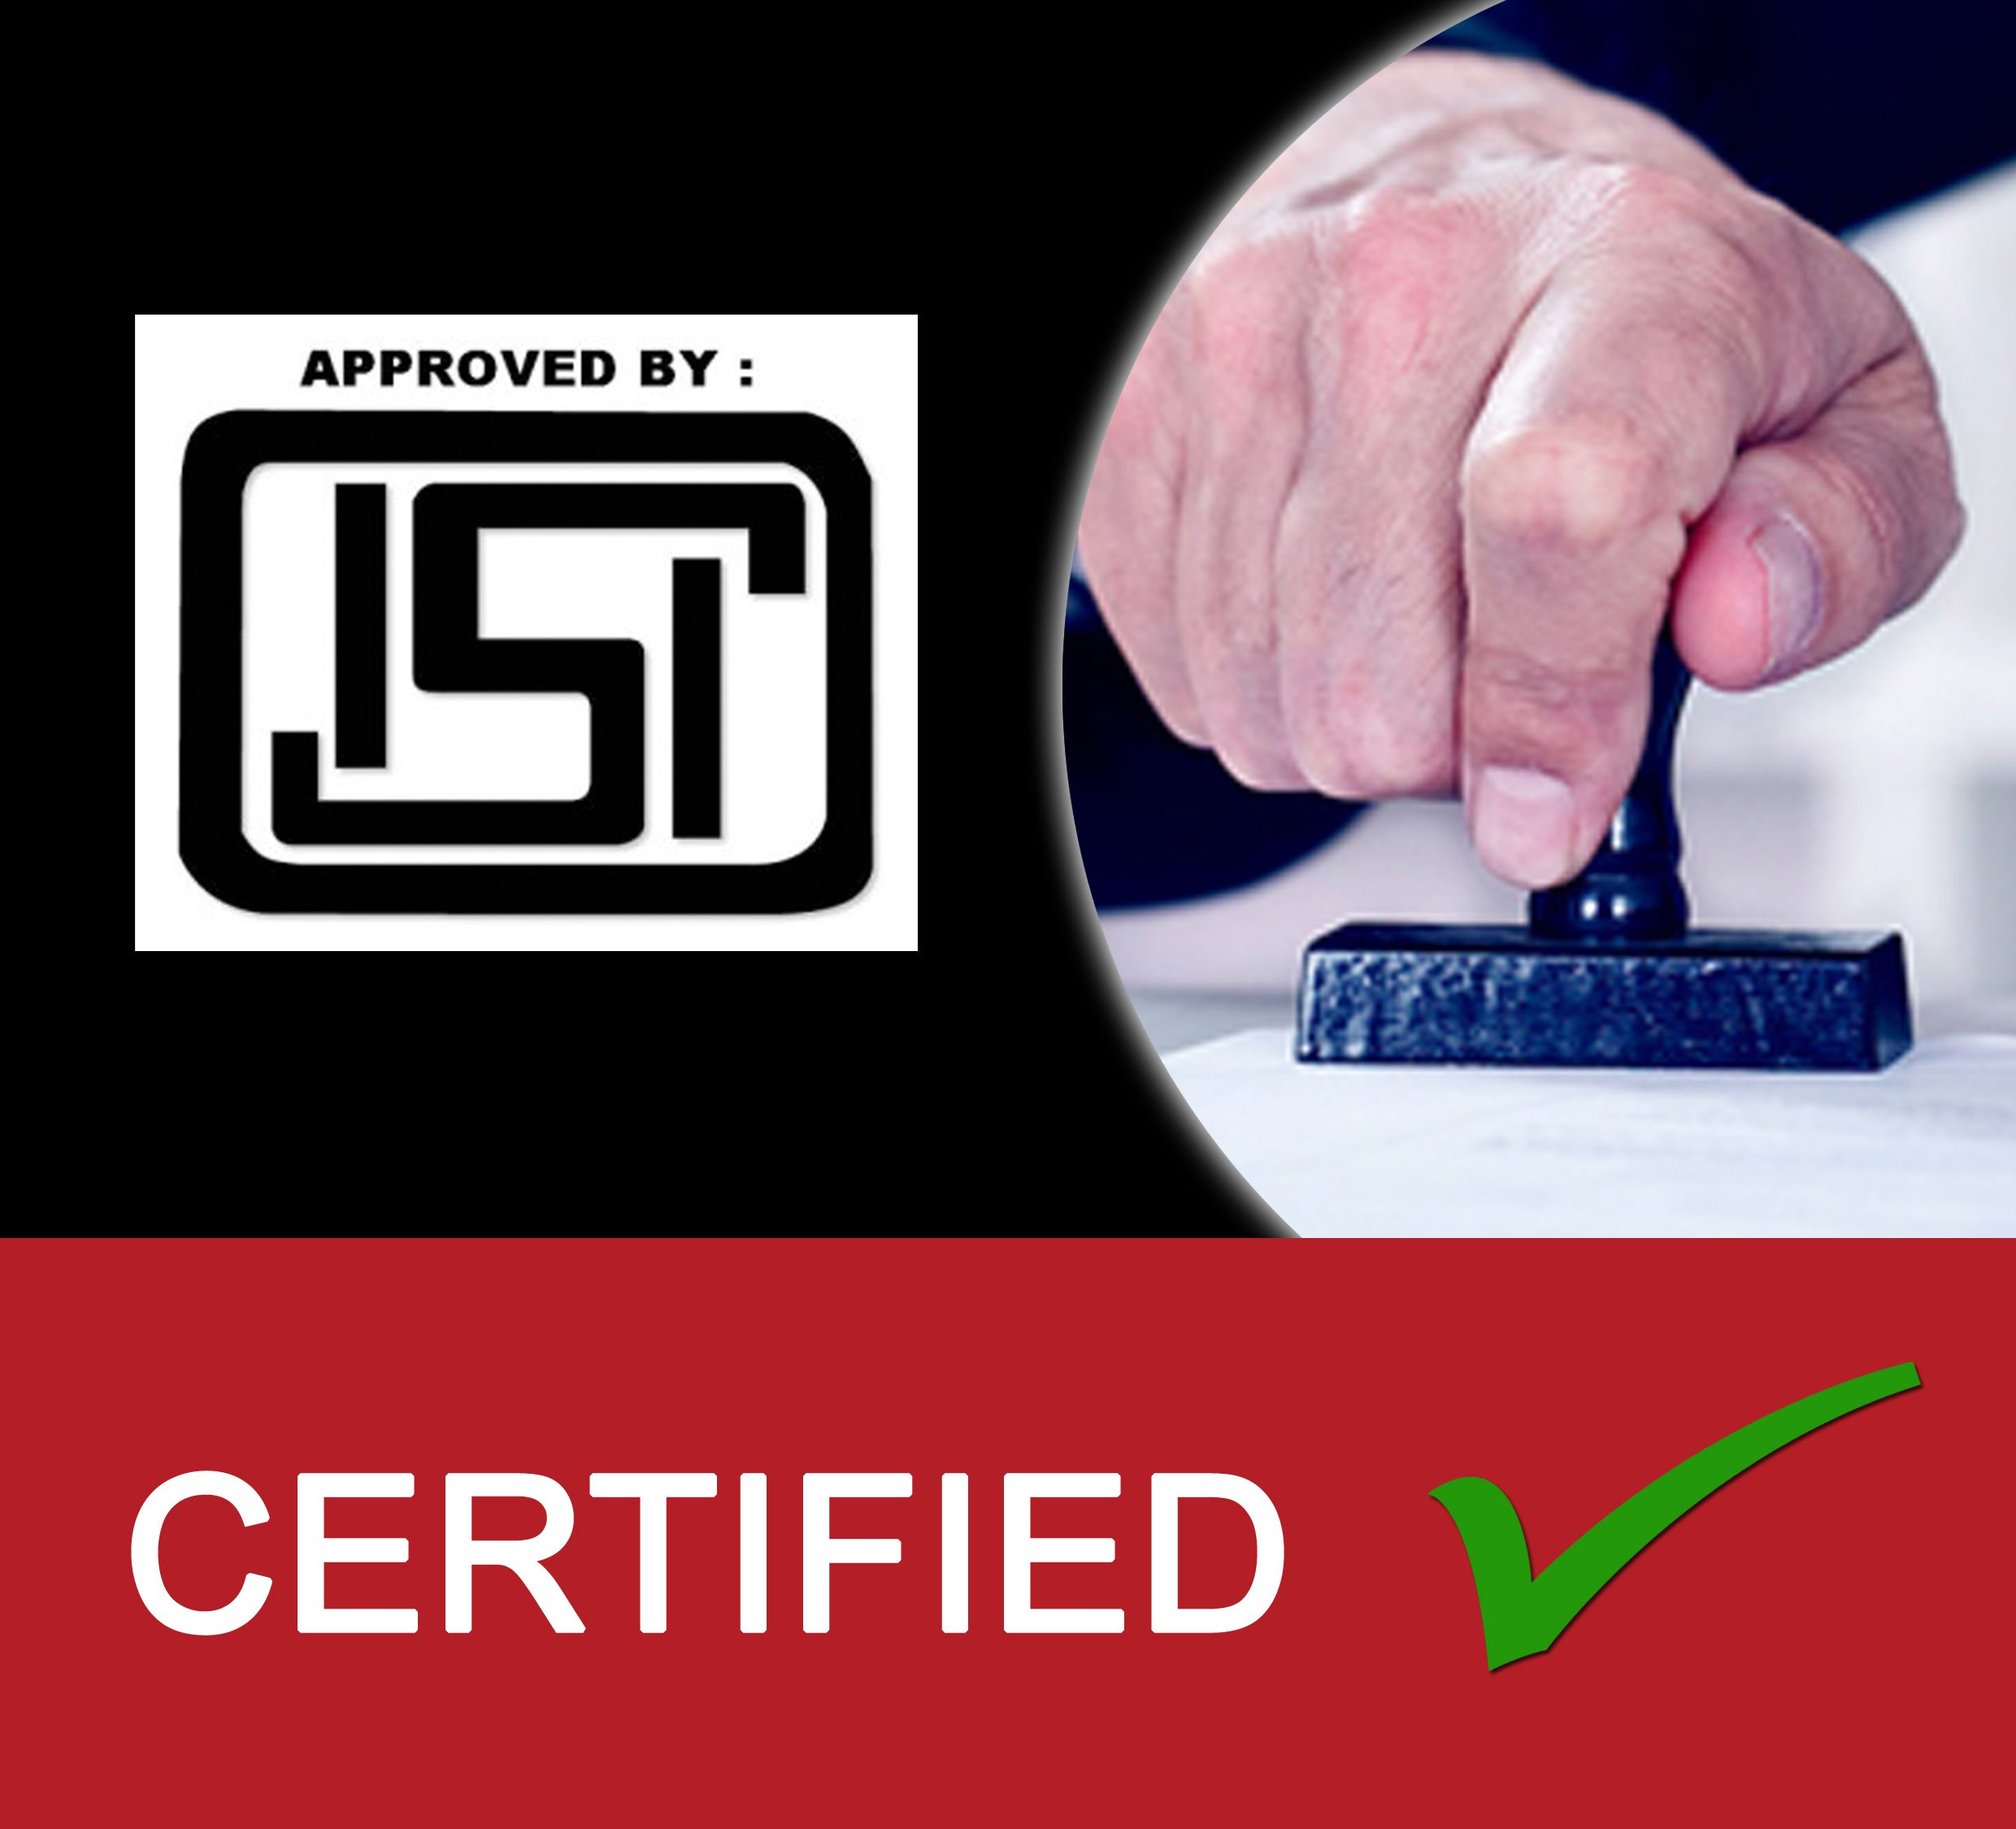 Get Your Product Imprinted With Trusted Isi Mark To Reflect The